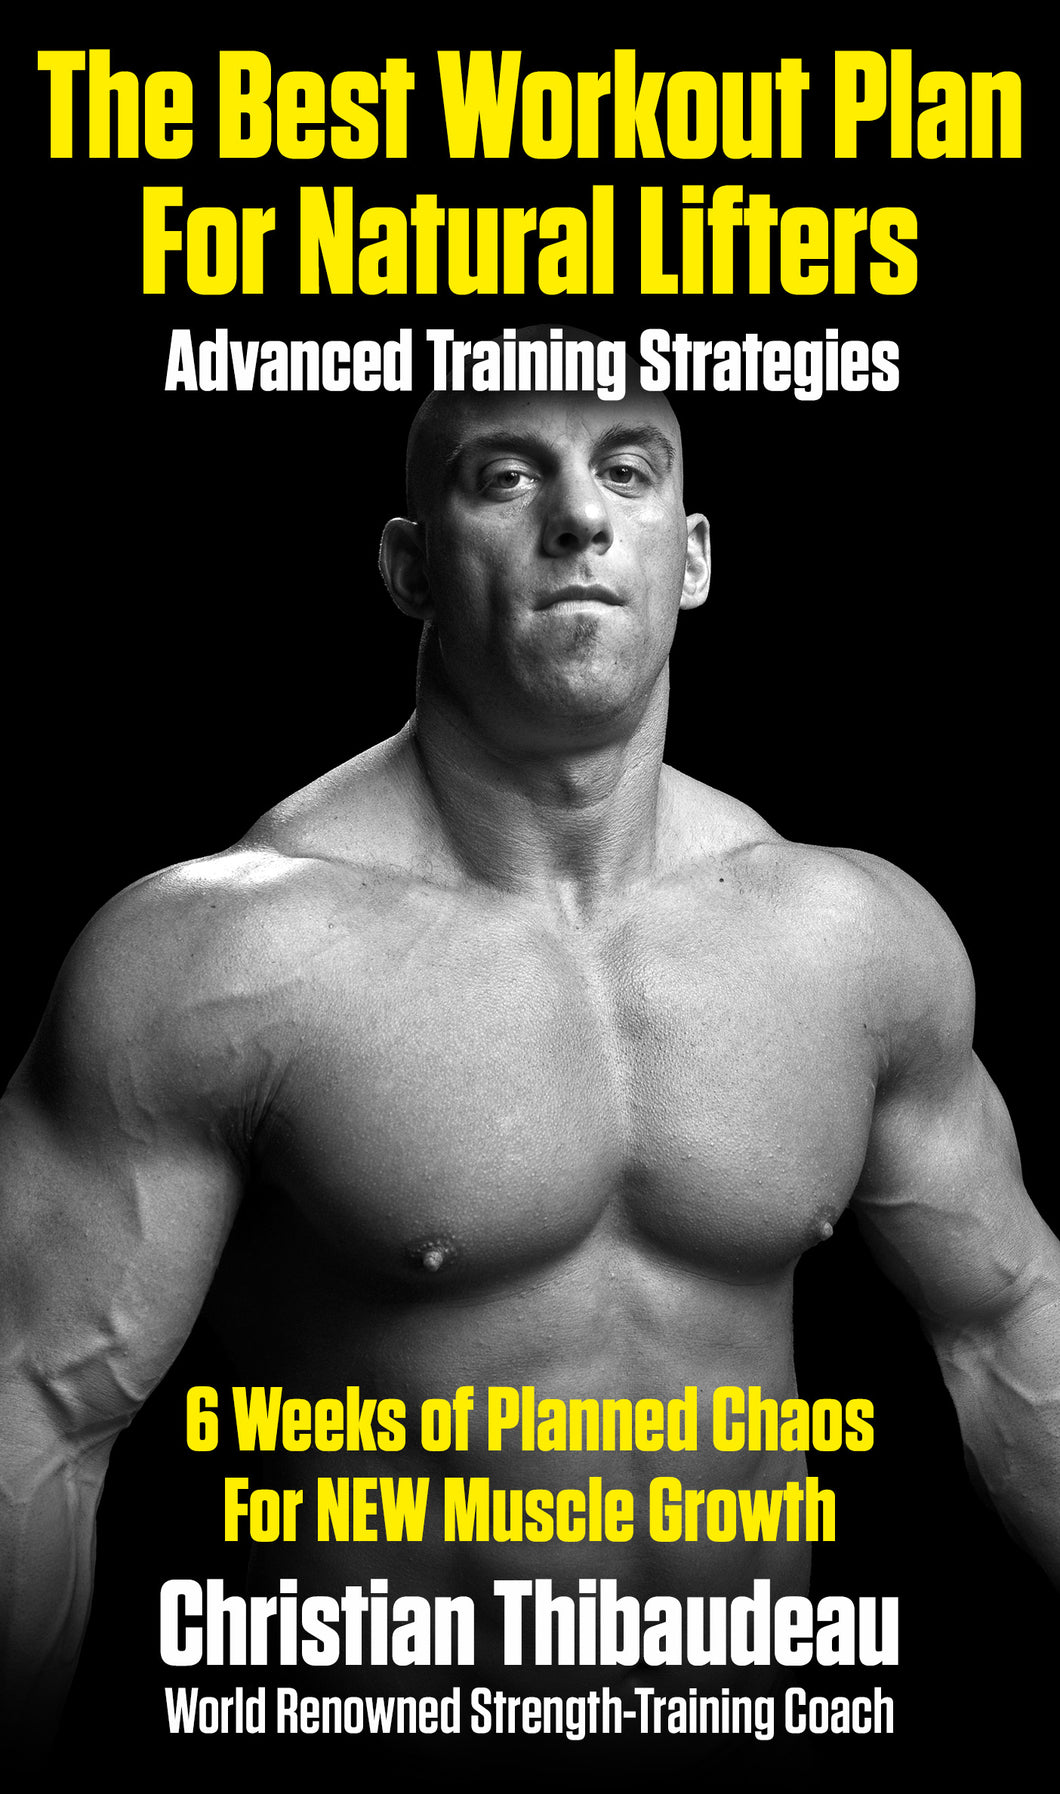 The Best Workout Plan for Natural Lifters by Christian Thibaudeau - 37 pages (Digital)